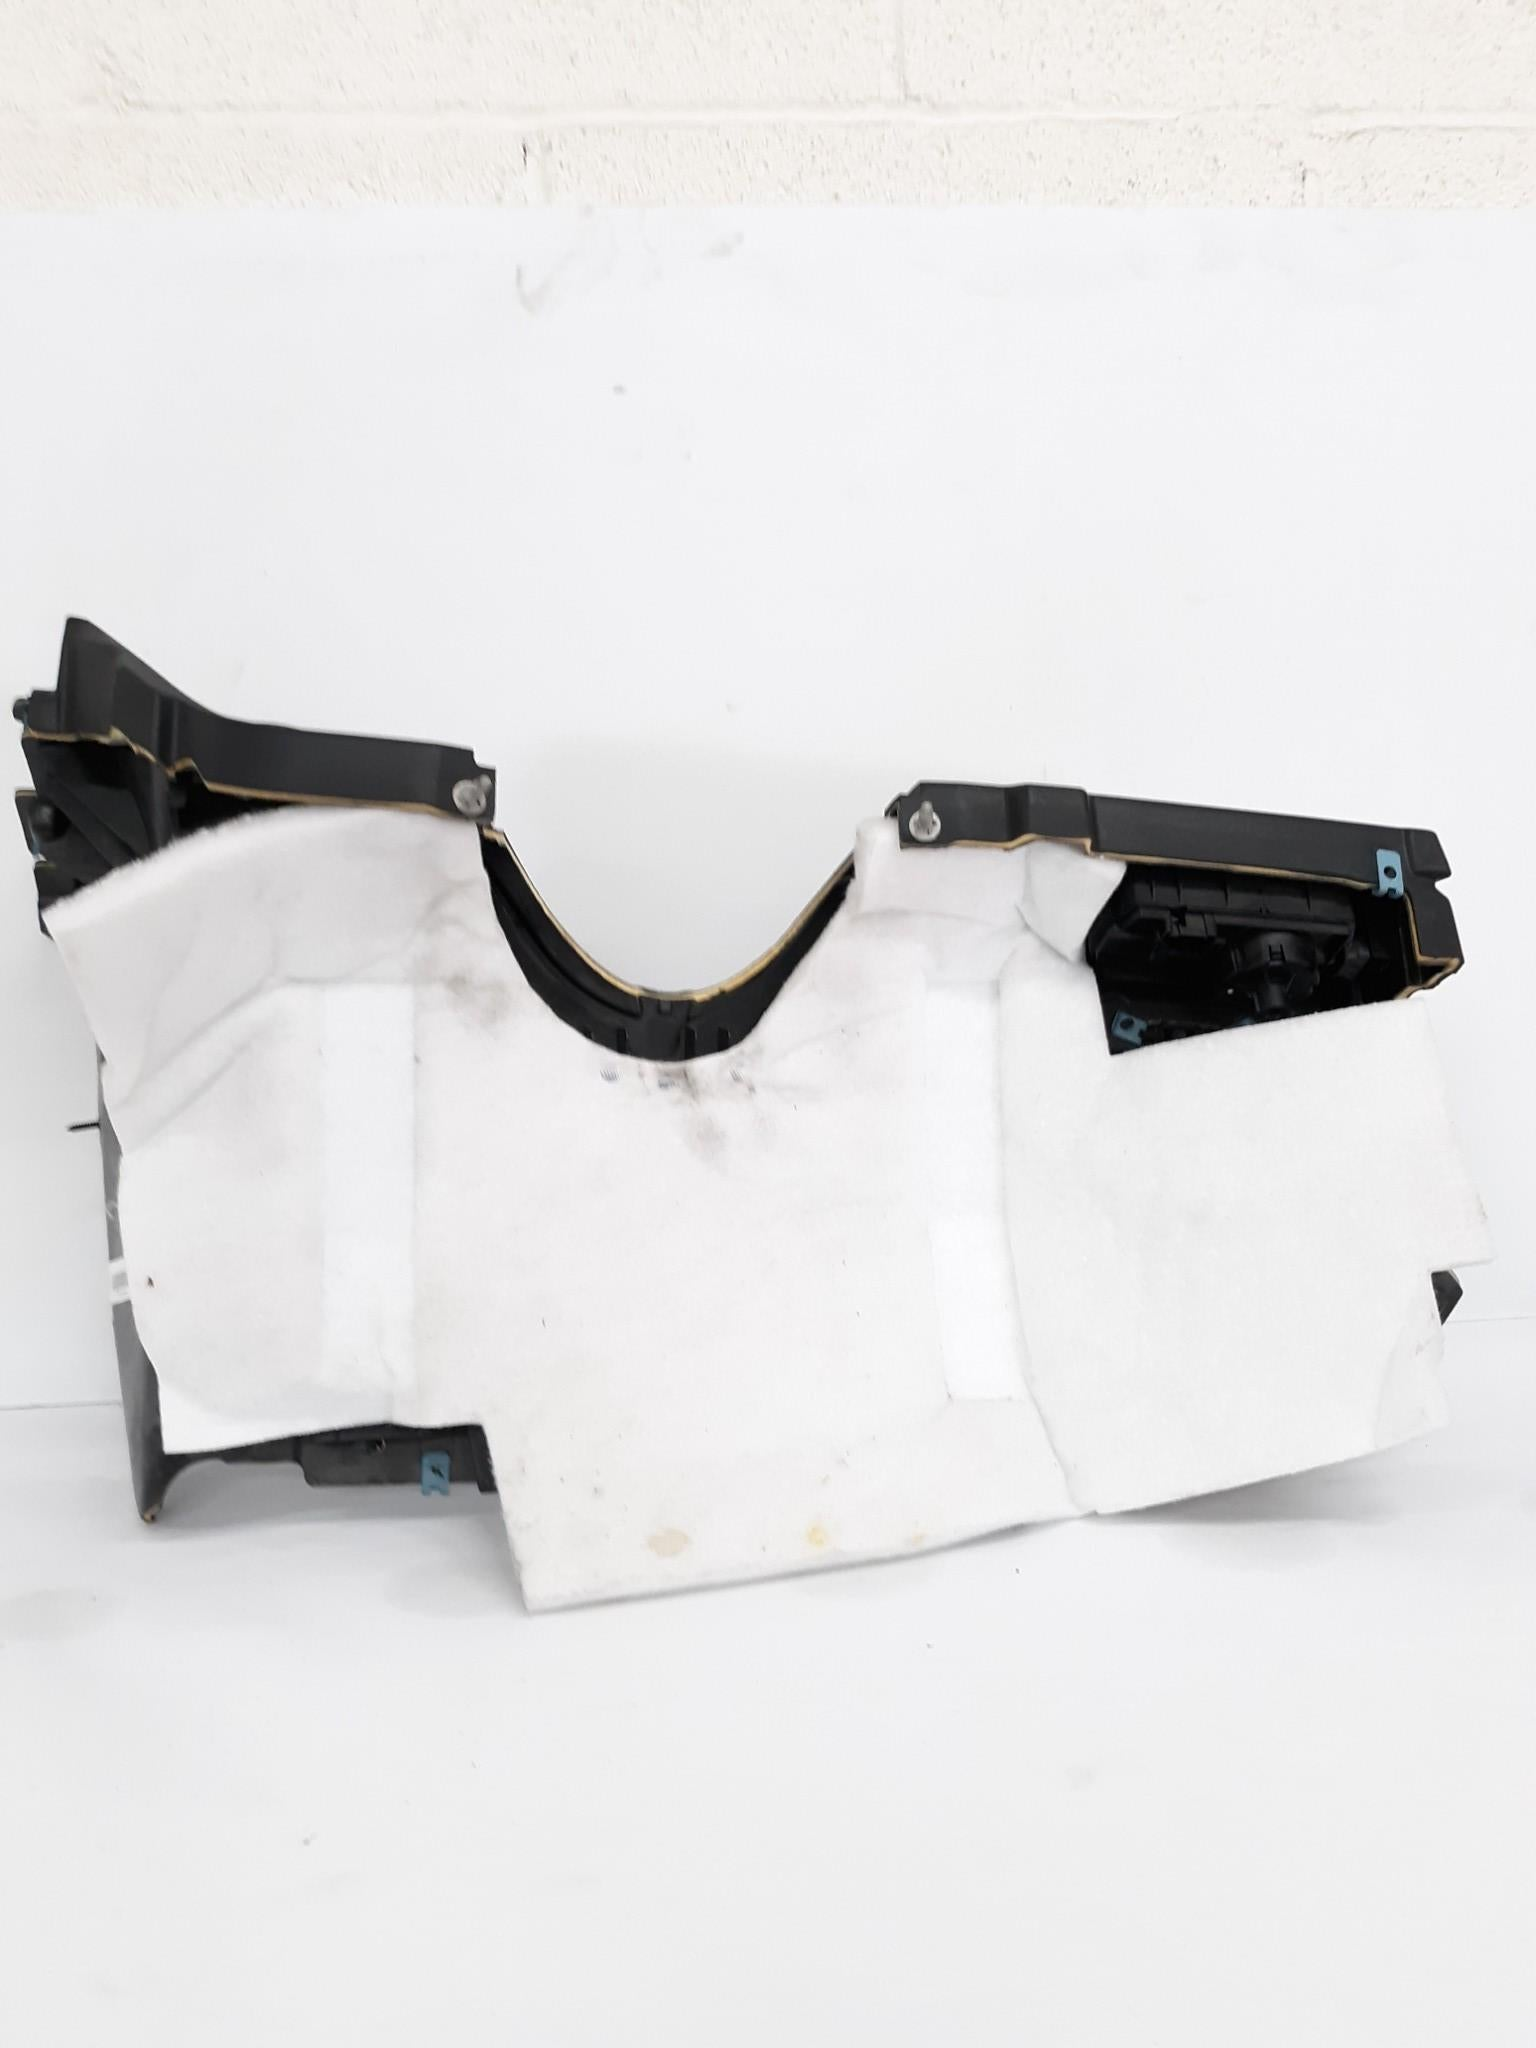 06-11 MERCEDES W164  INSTRUMENT DASH PANEL KNEE BOLSTER COVER BLACK 1646802387 - Click Receive Auto Parts